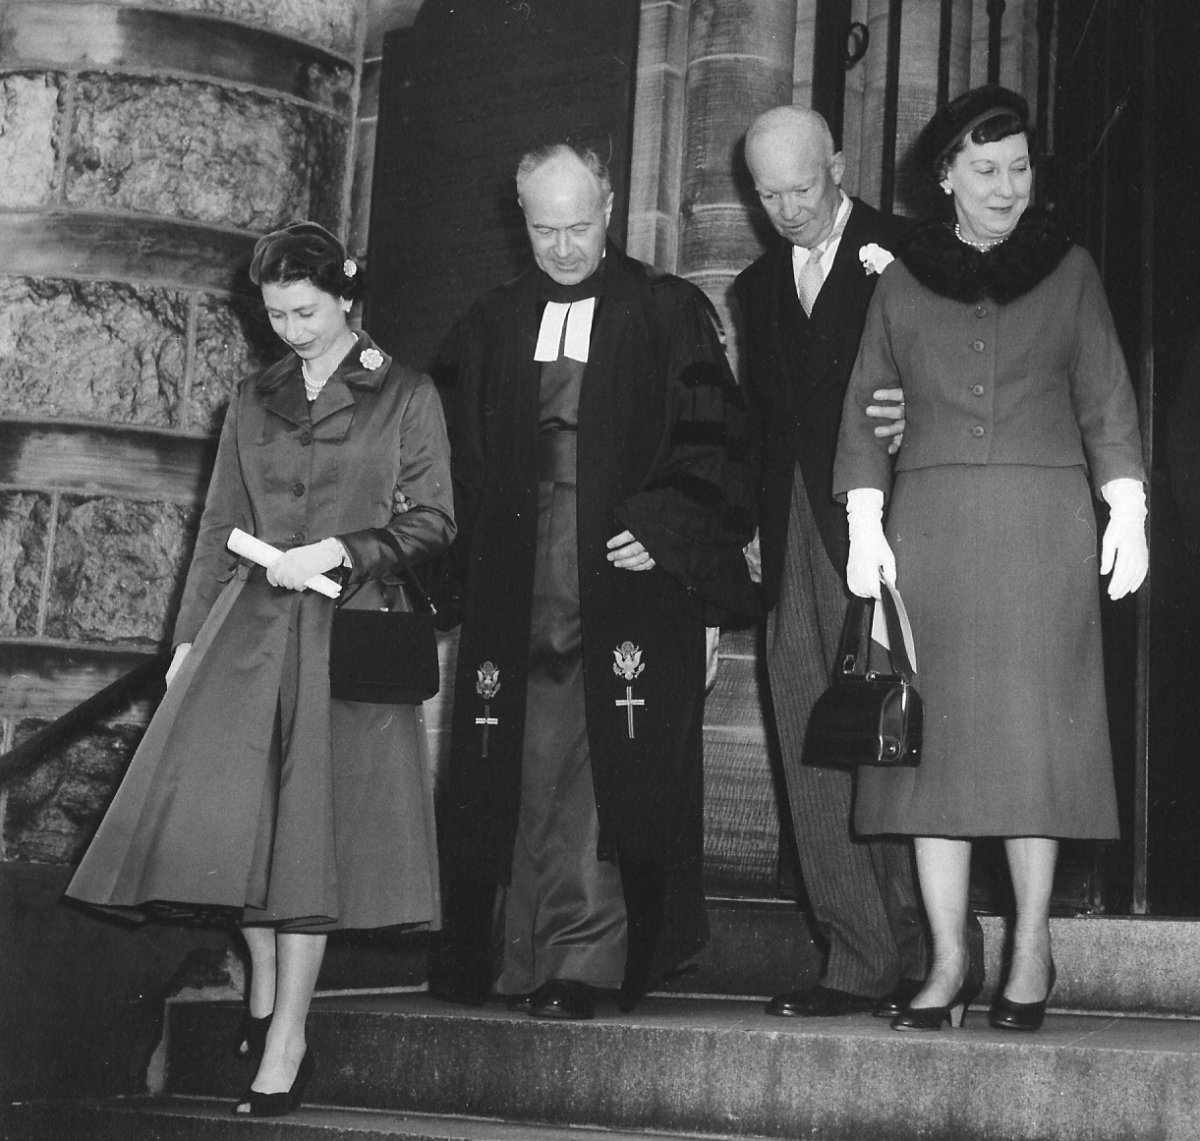 US President and First Lady accompany British royal family on a visit to National Presbyterian Church, 1957 - L to R: Queen Elizabeth II, Dr. Elson, President Eisenhower, Mamie Eisenhower, Associate Minister John Edwards and Prince Philip